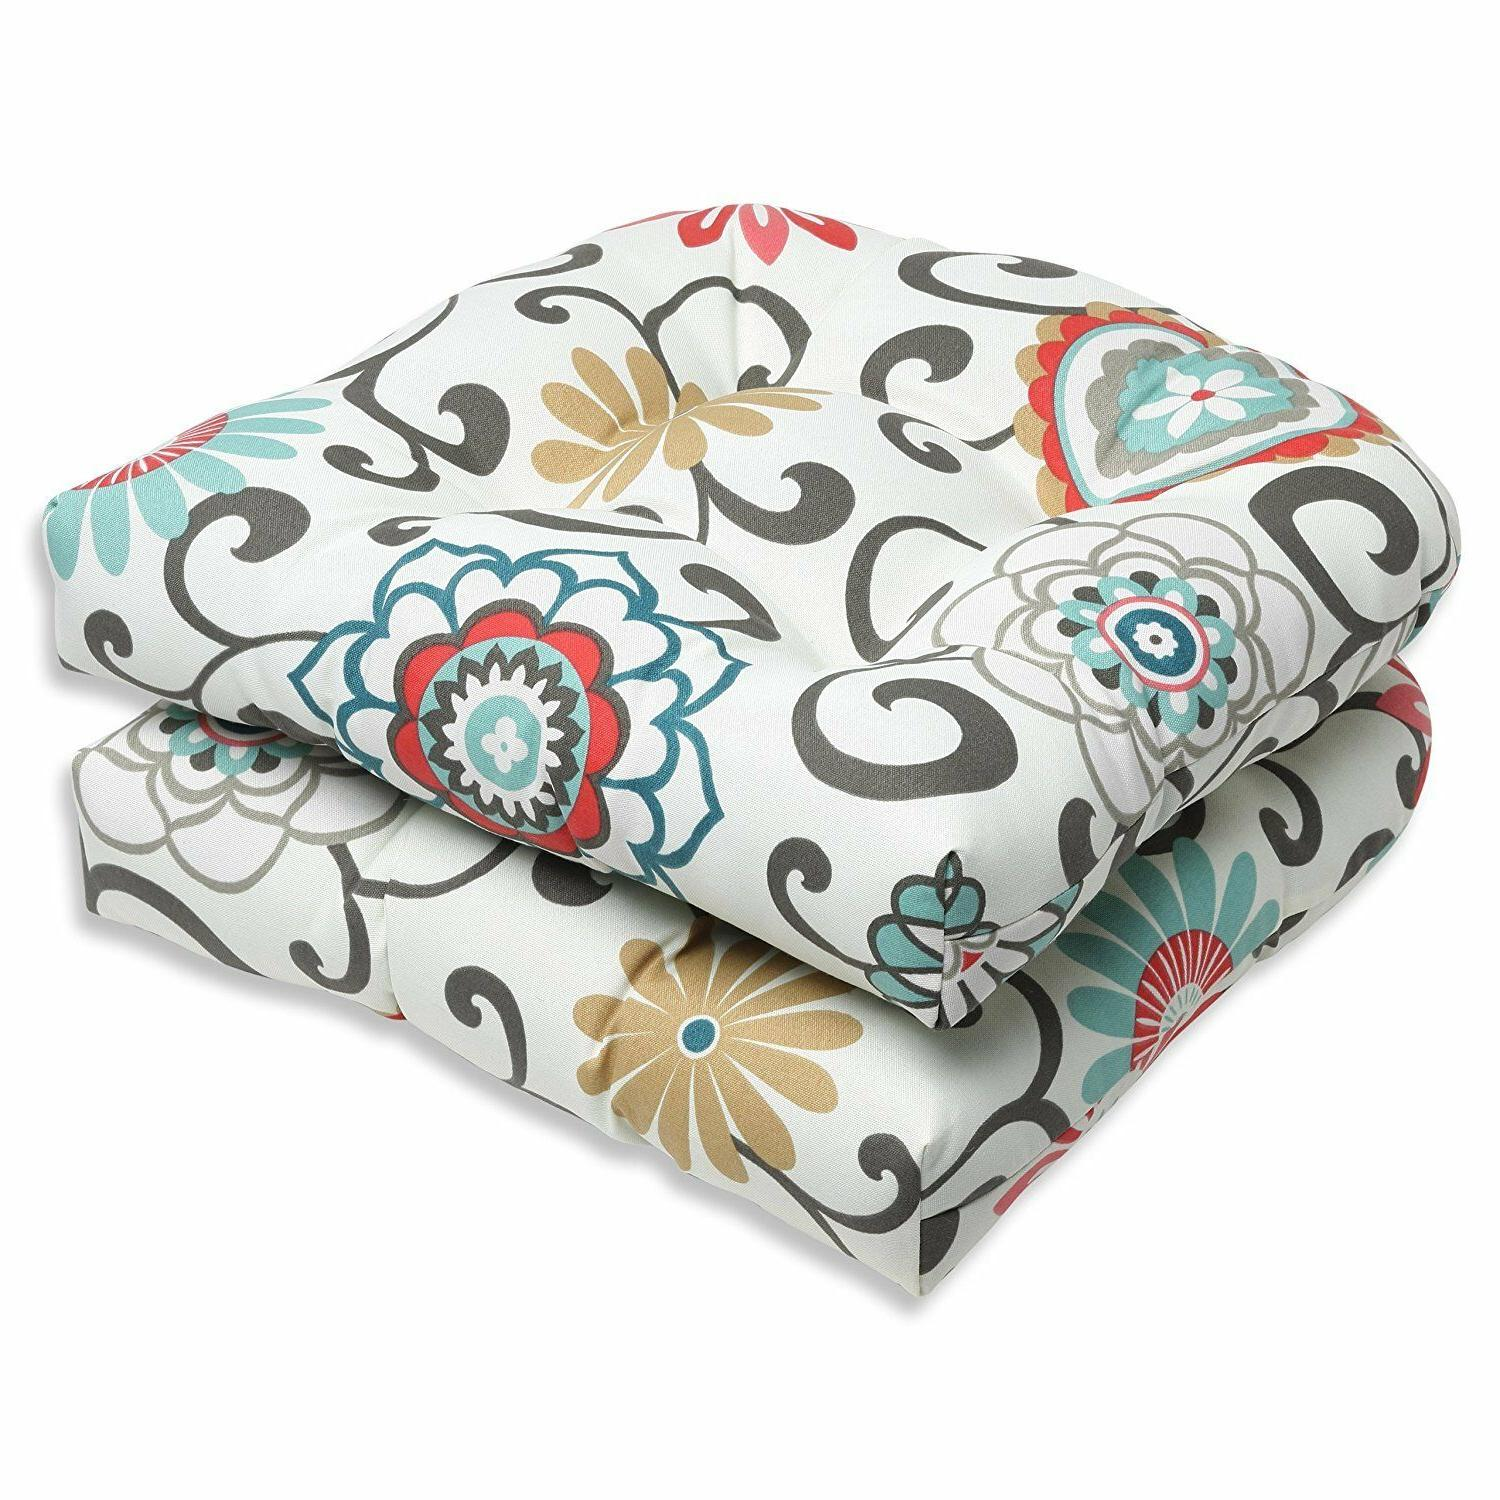 Outdoor Seat Cushions For Wicker Chairs Seat Patio Furniture